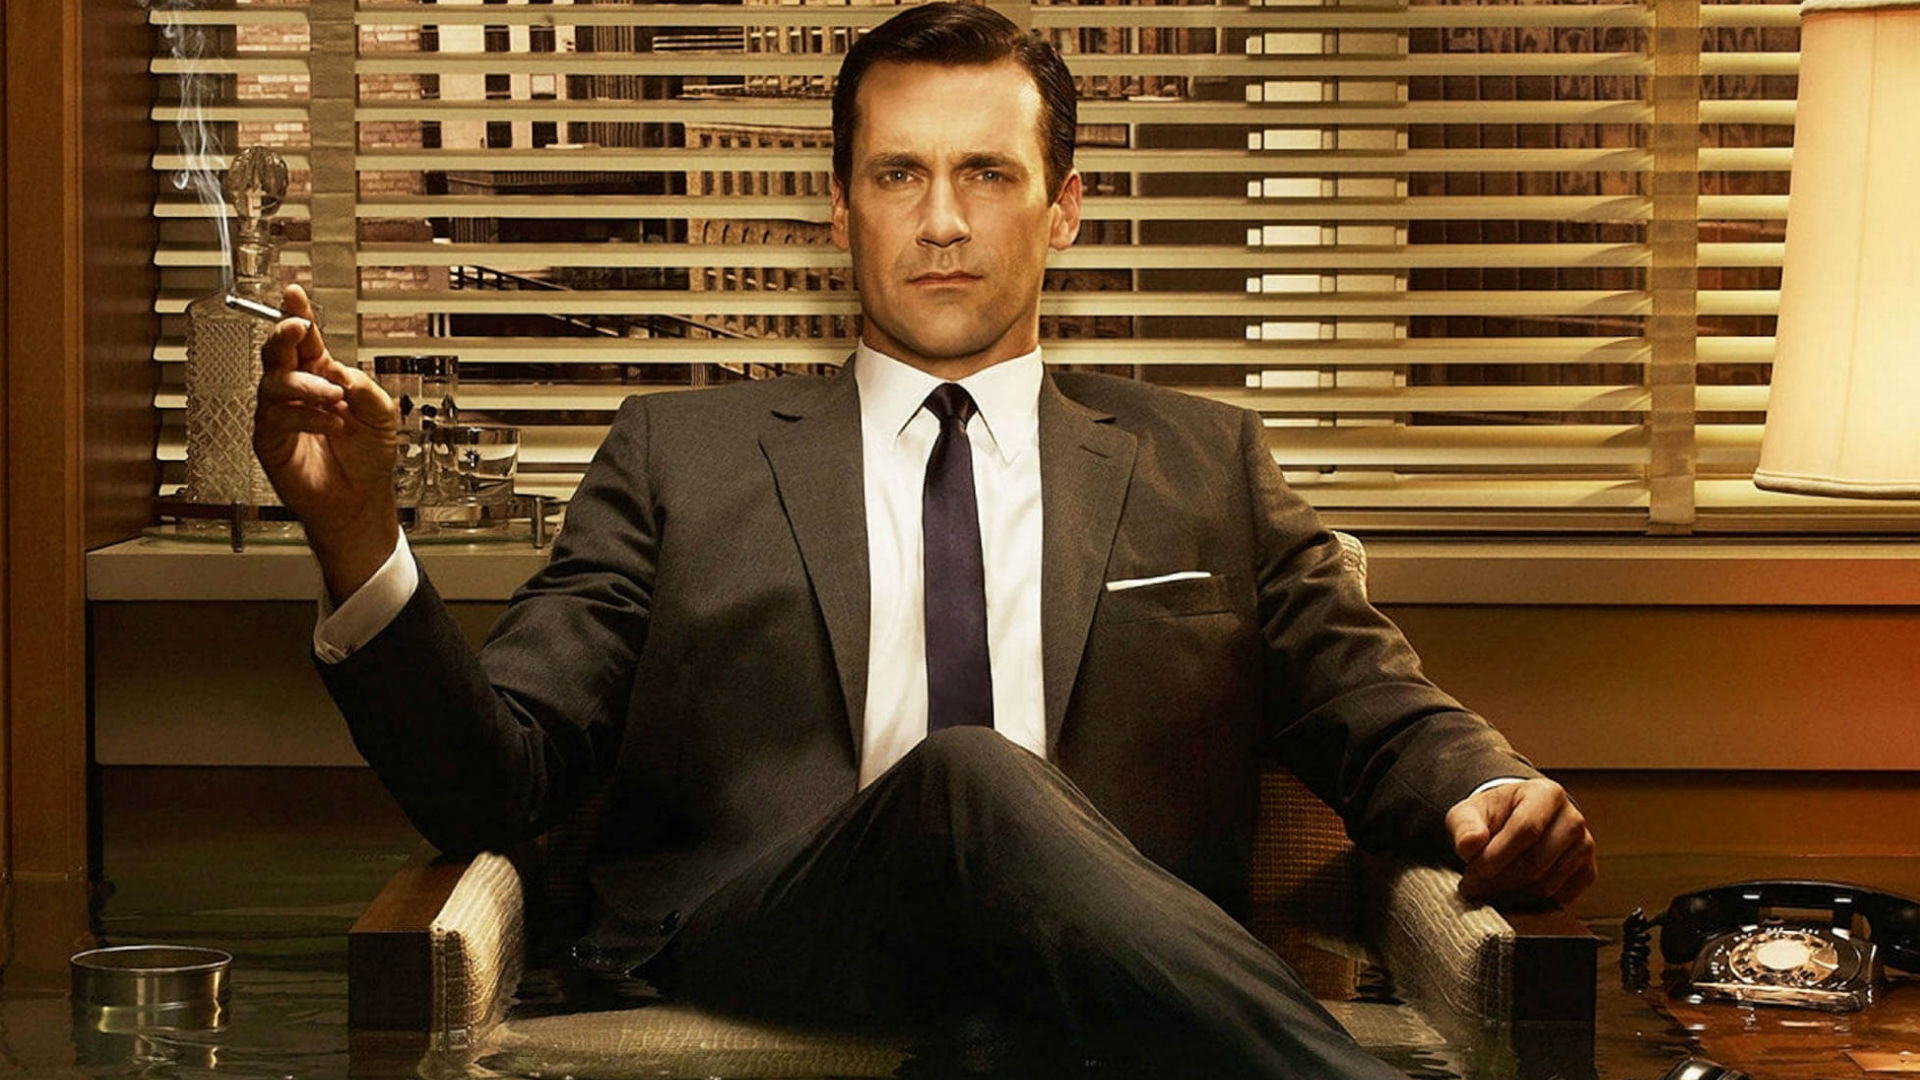 A suit wearing Jon Hamm as Don Draper in Mad Men